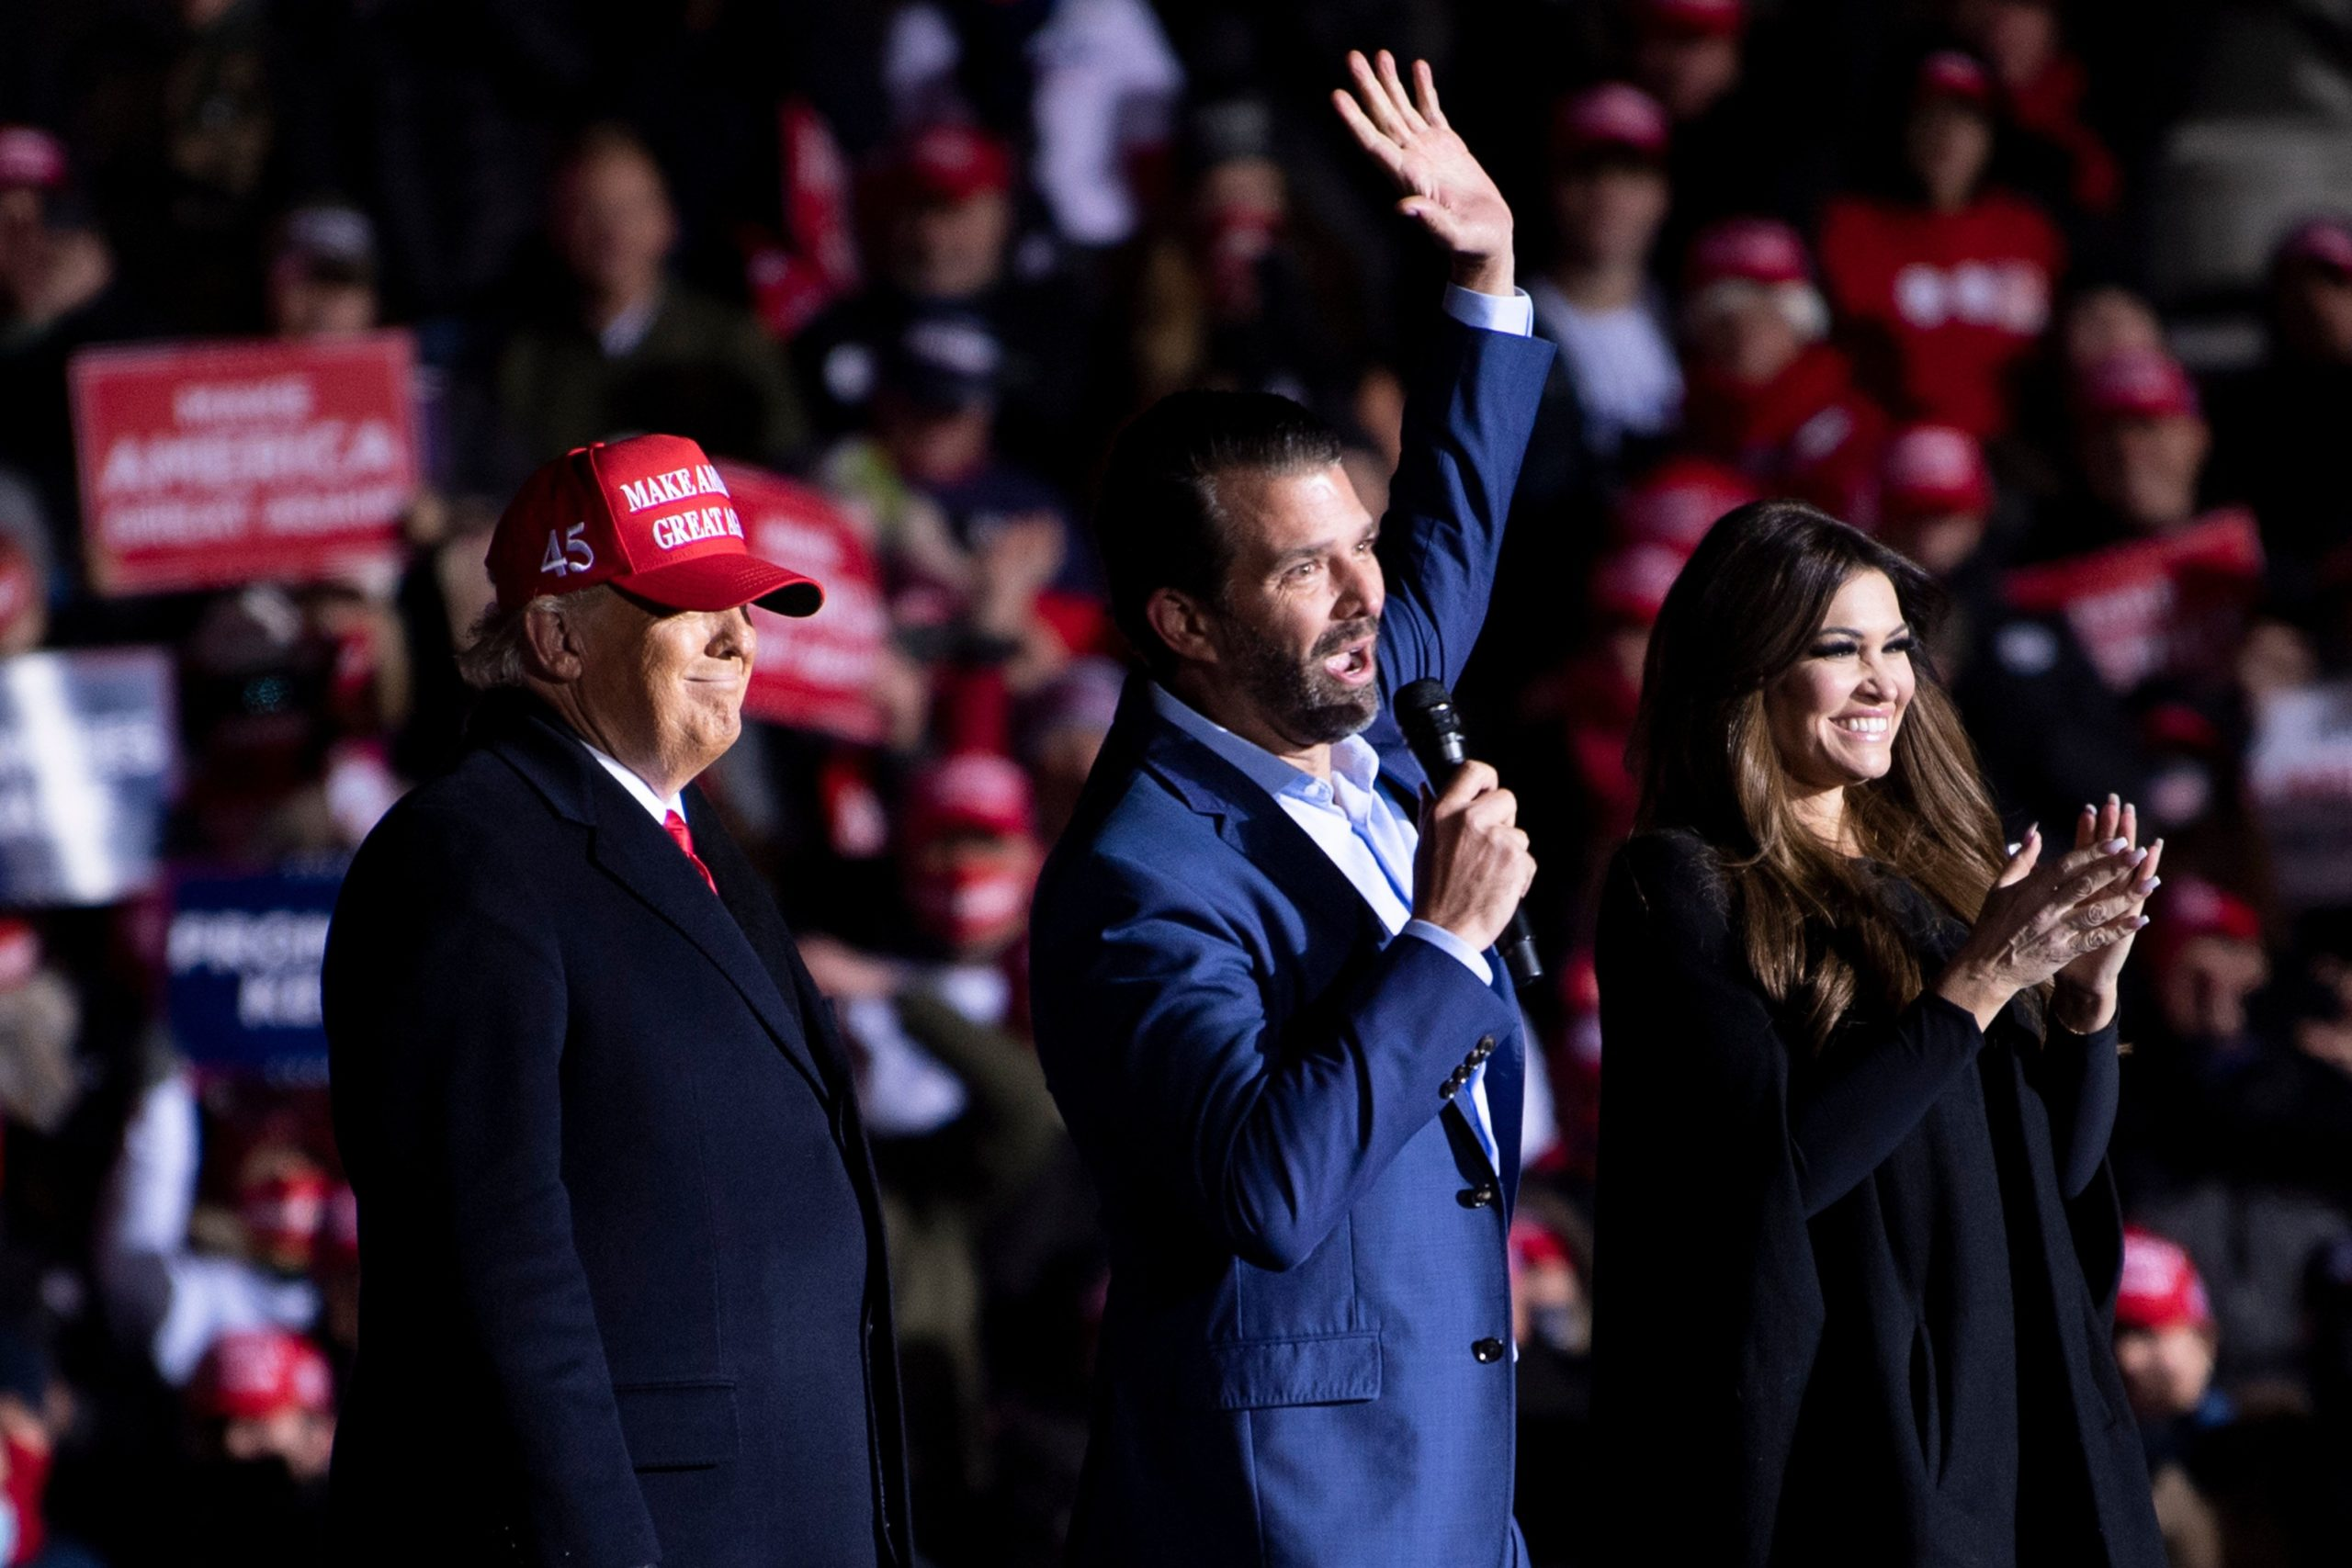 US President Donald Trump and Kimberly Guilfoyle listen while Donald Trump Jr. speaks during a Make America Great Again rally at Kenosha Regional Airport November 2, 2020, in Kenosha, Wisconsin. (Photo by BRENDAN SMIALOWSKI/AFP via Getty Images)